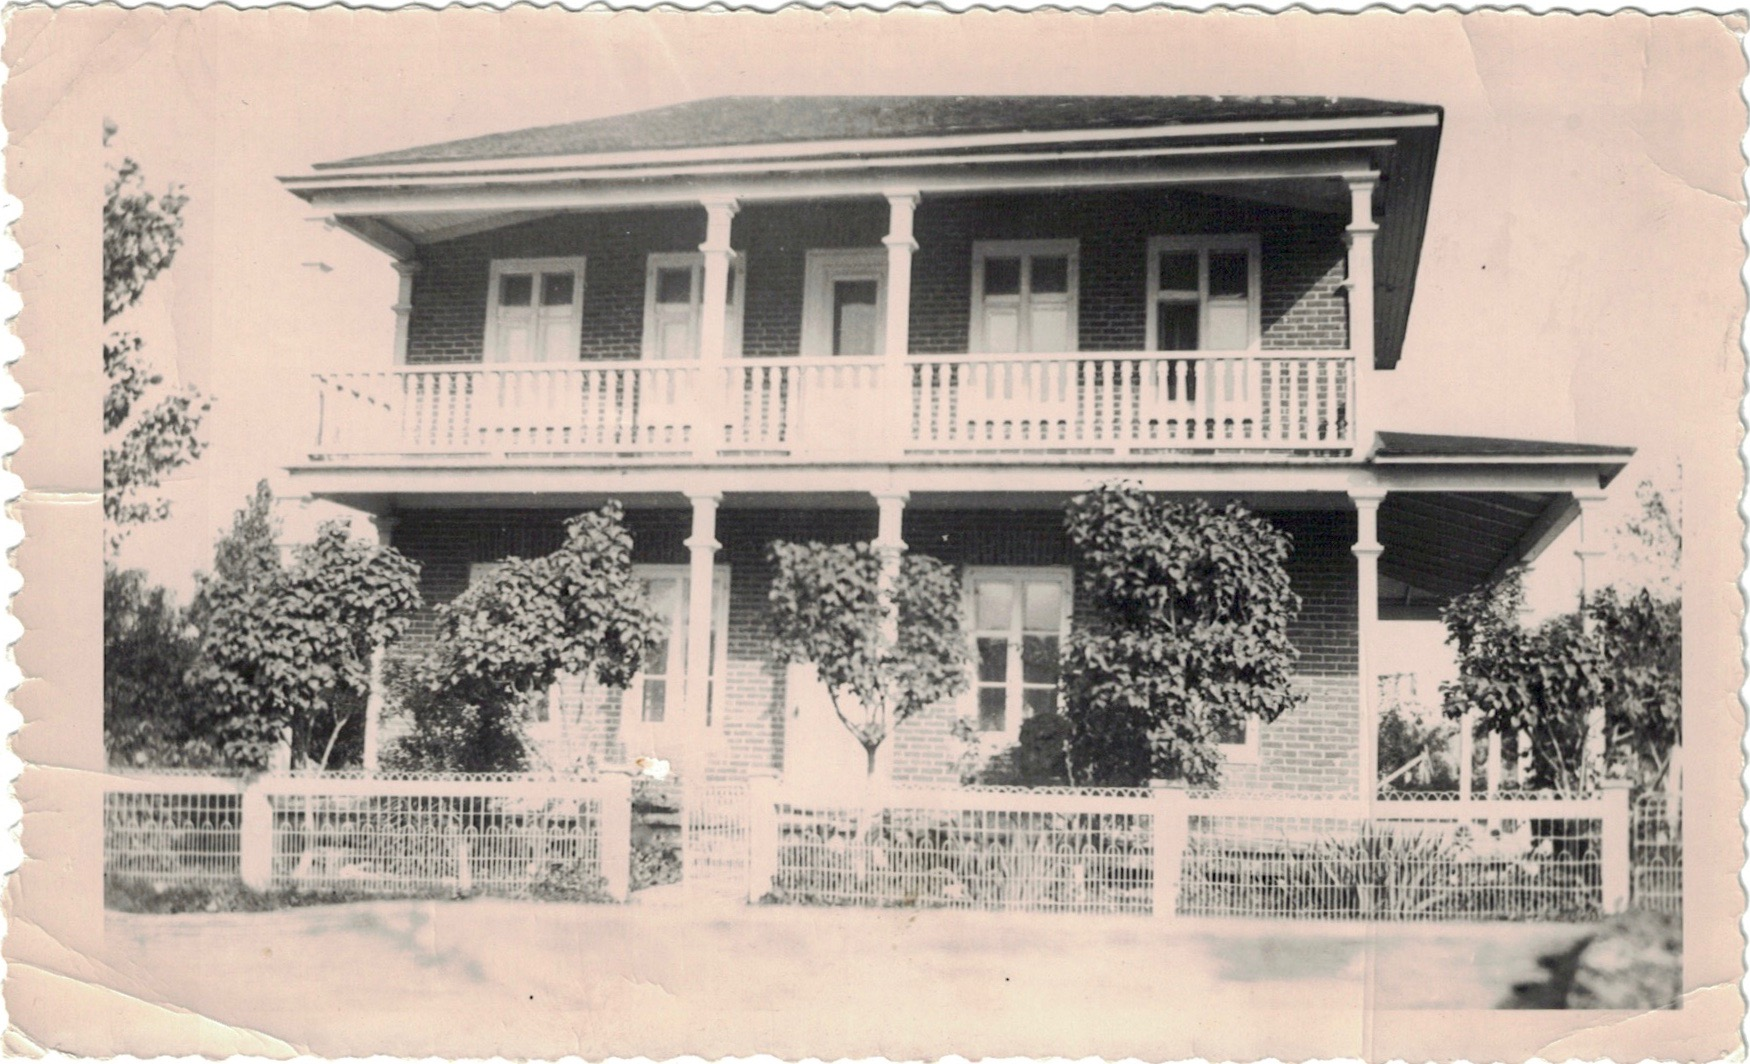 Dating historical house construction